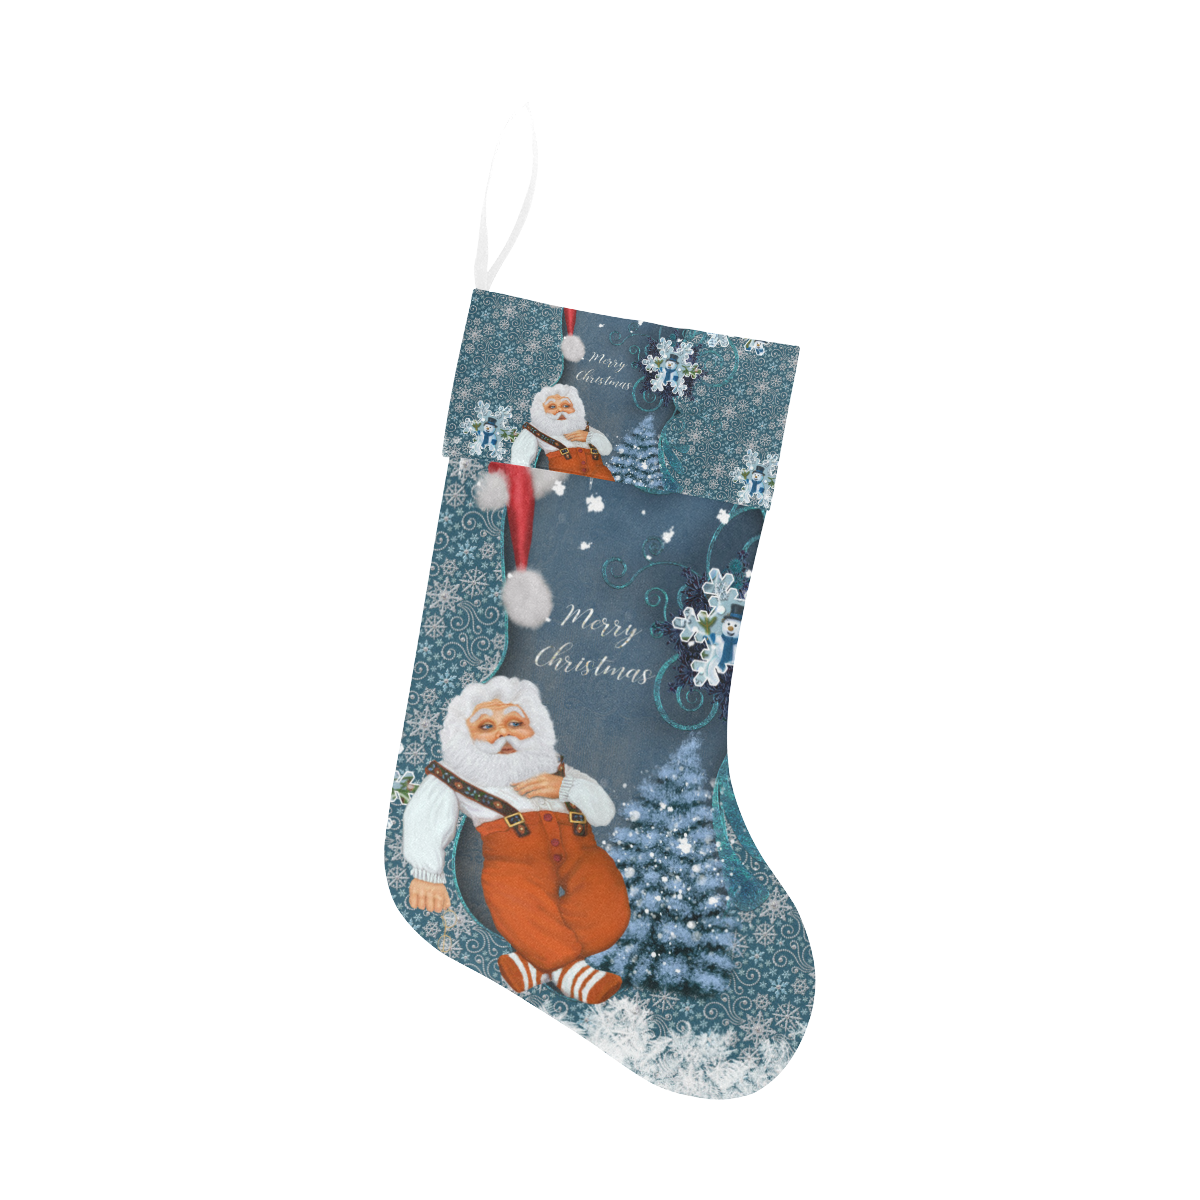 Funny Santa Claus Christmas Stocking